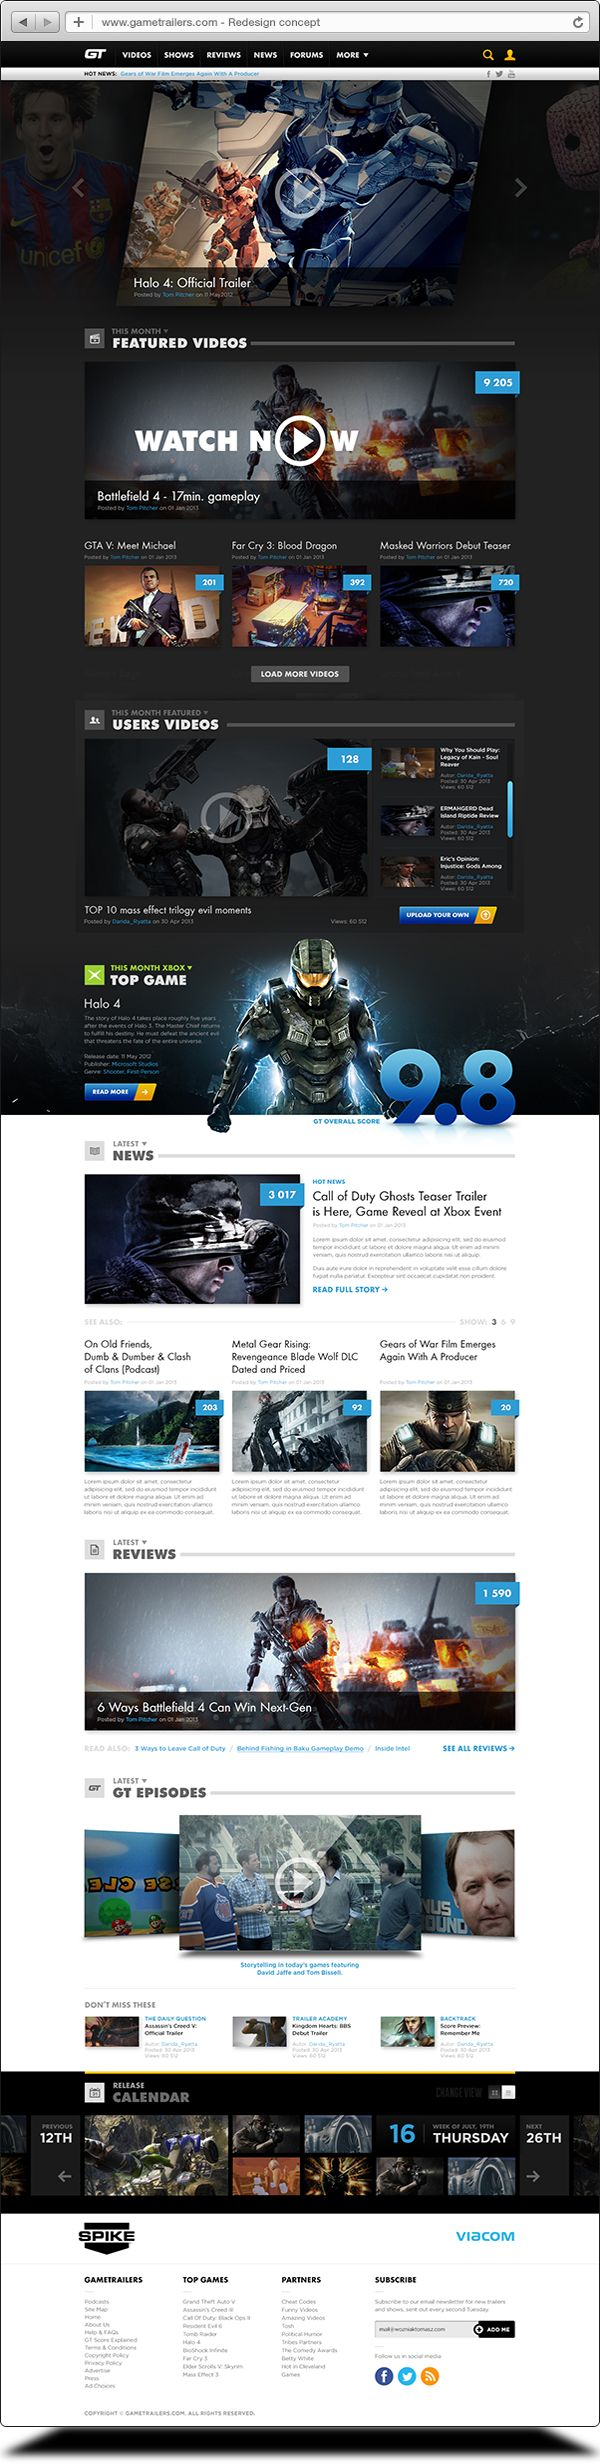 Gametrailers redesign concept by Tom Wozniak, via Behance